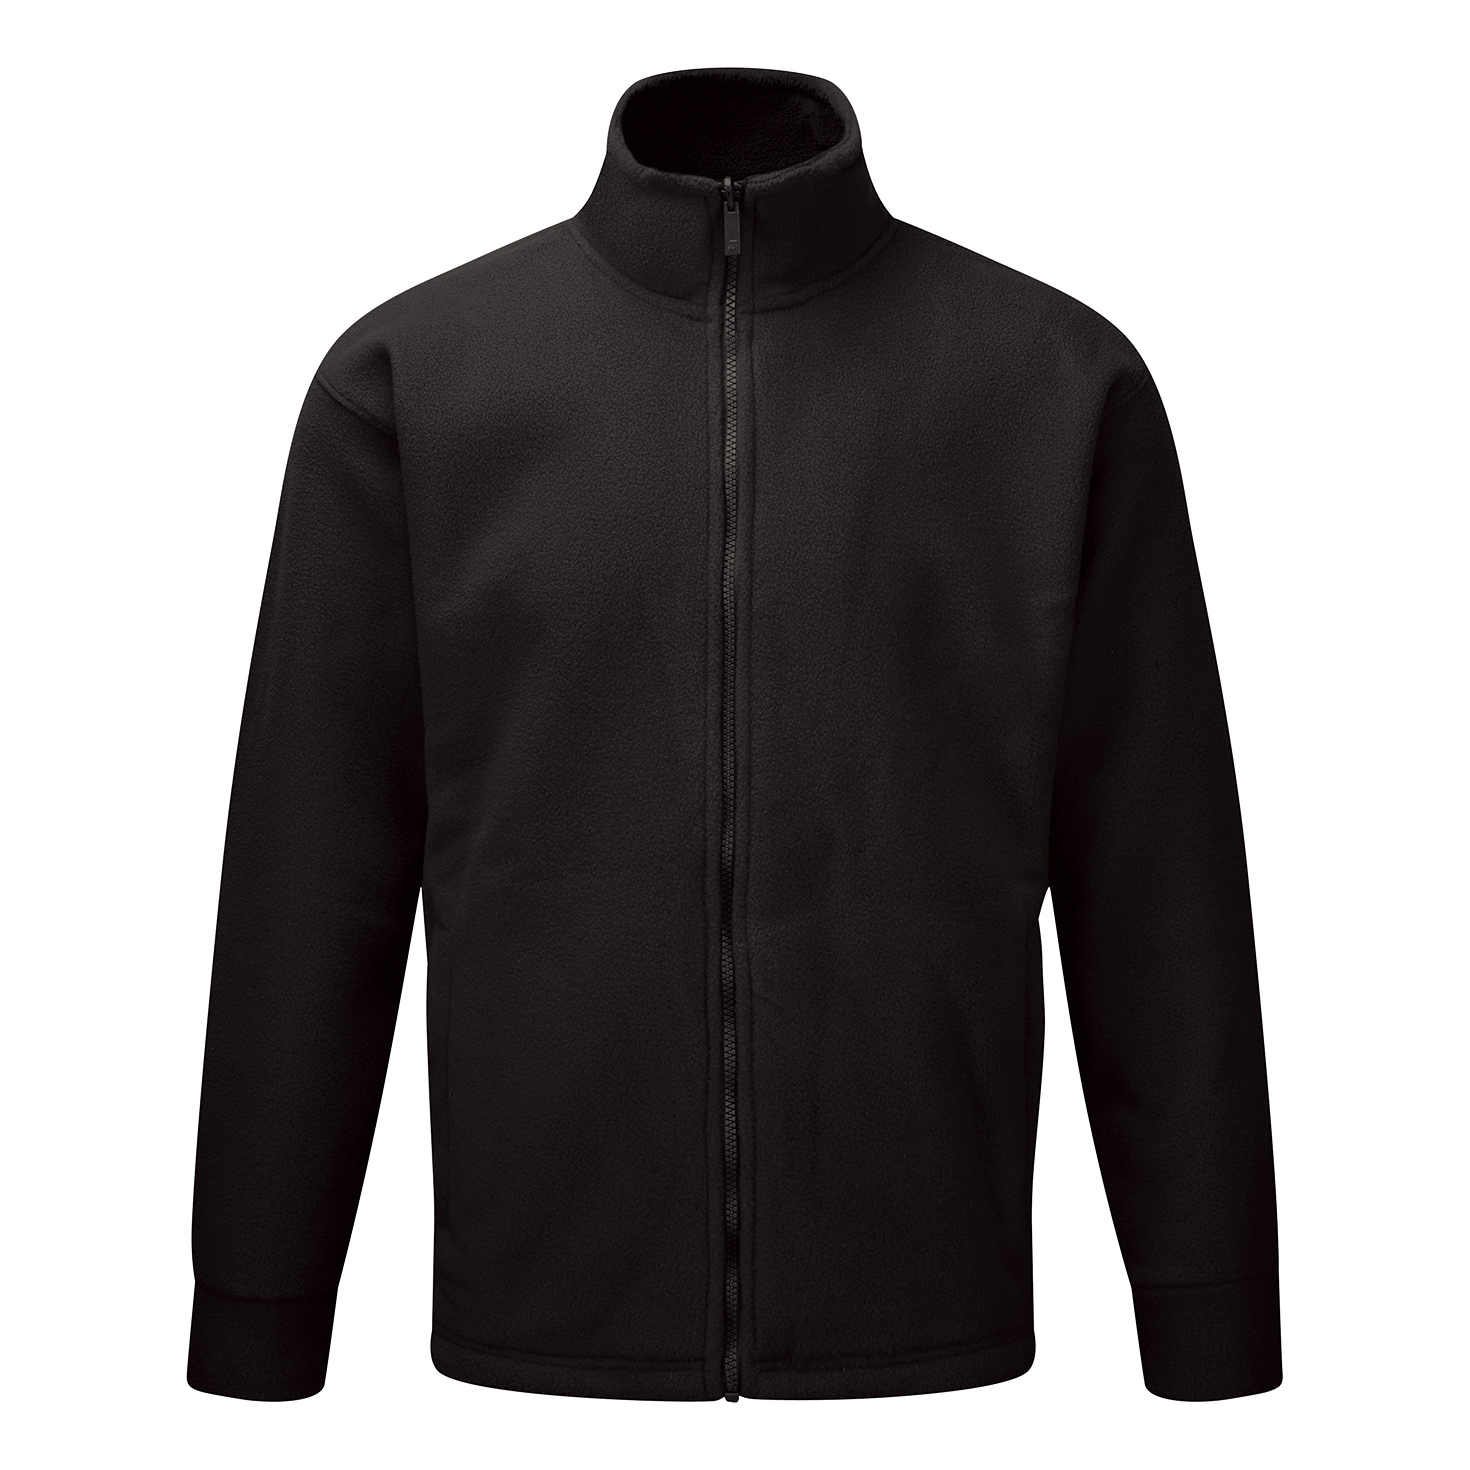 Fleeces Classic Fleece Jacket Elasticated Cuffs Full Zip Front Small Black Ref FLJBLS *1-3 Days Lead Time*